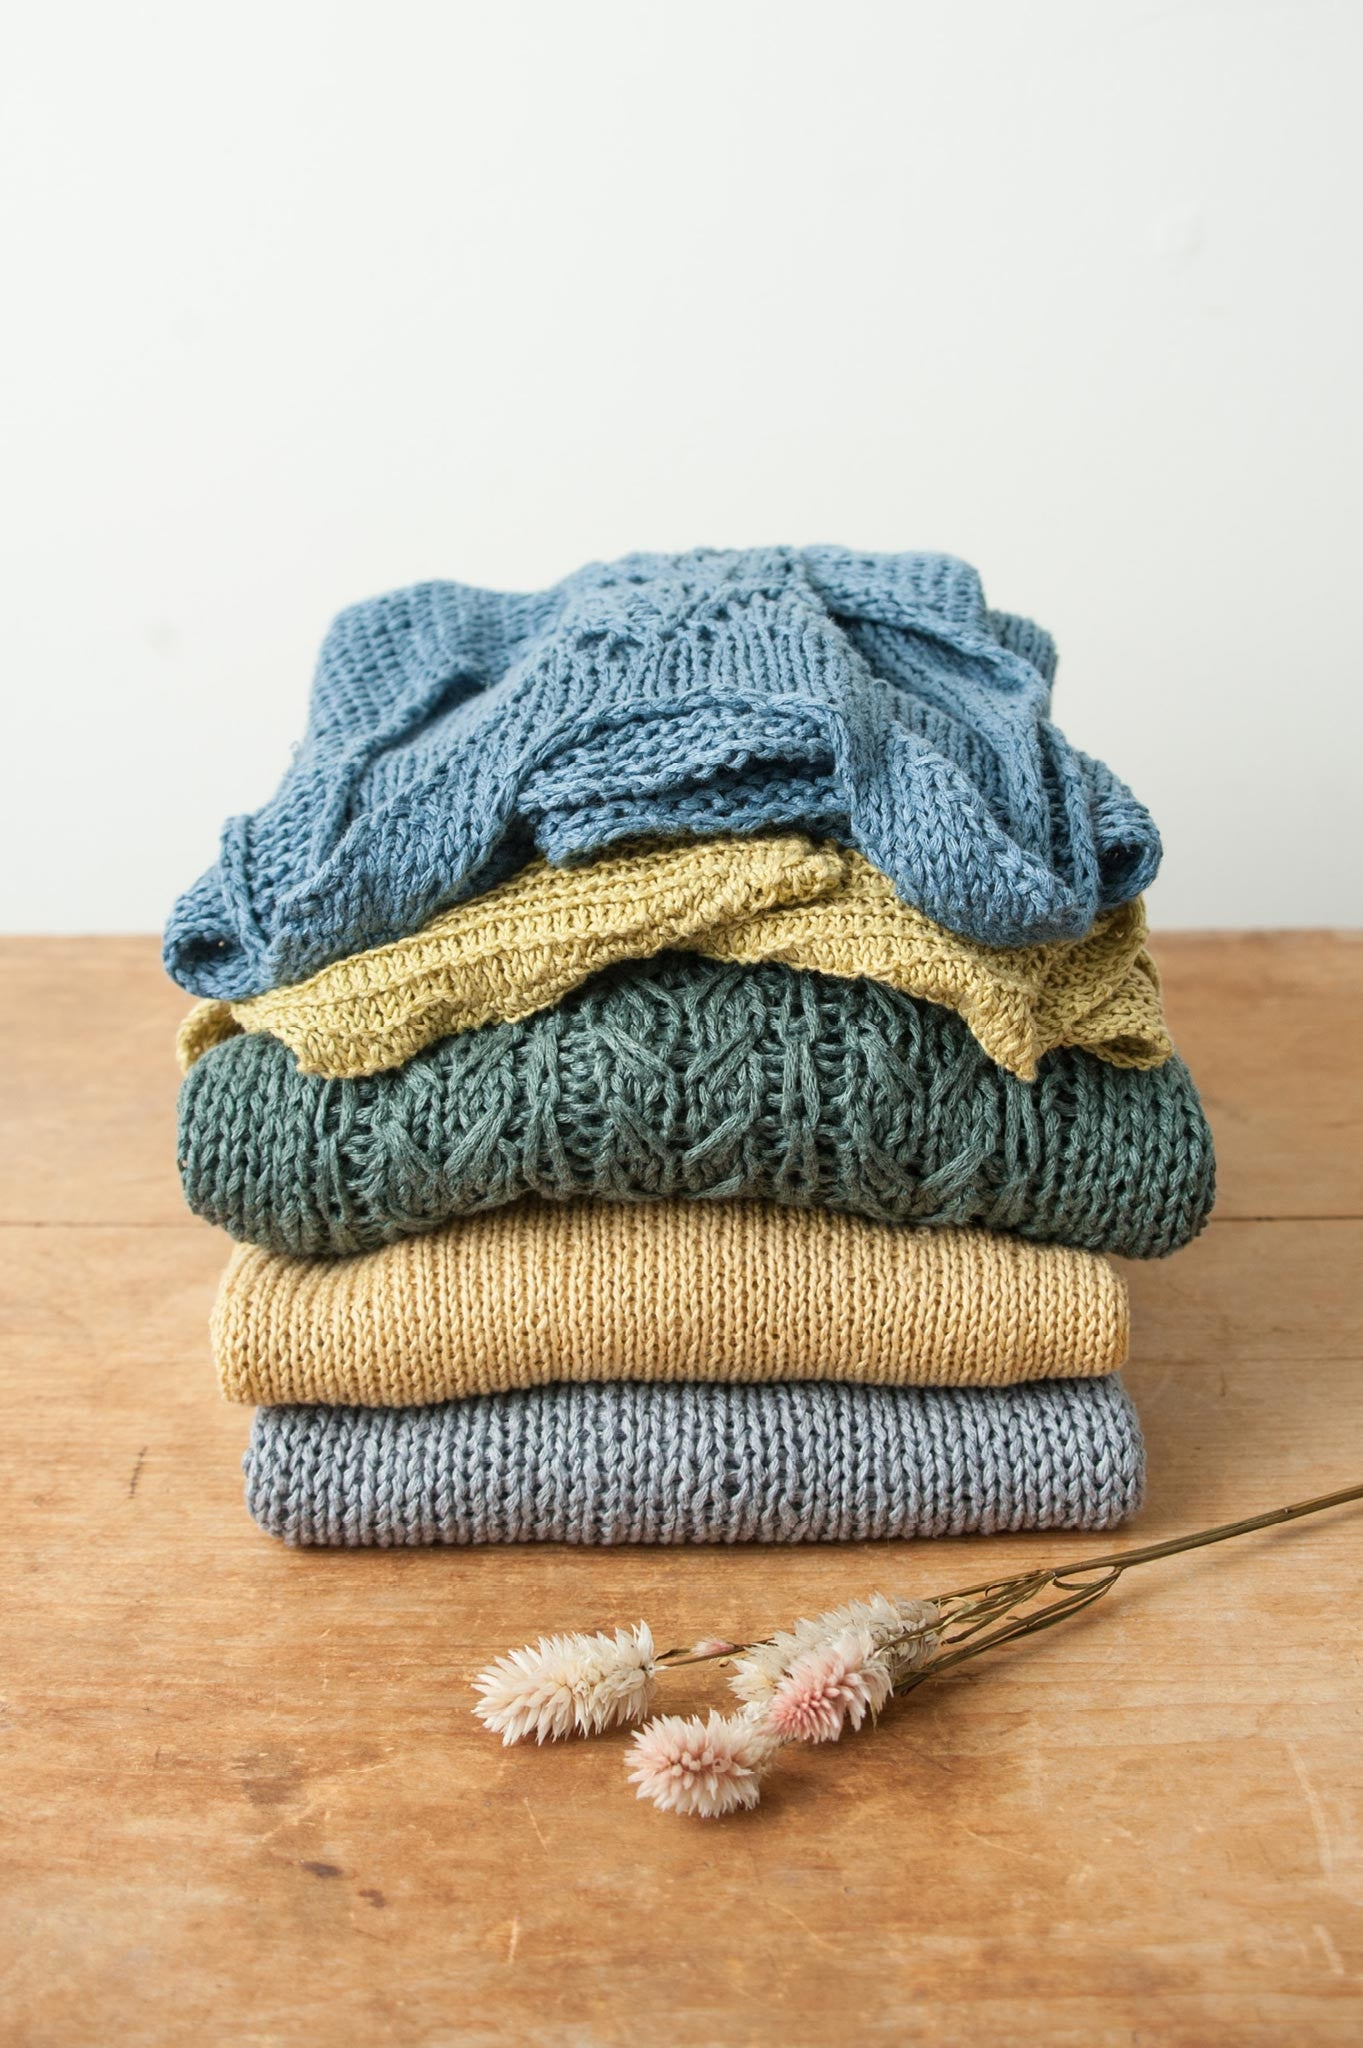 https://quinceandco.com/products/linen-verdant-knitting-collection